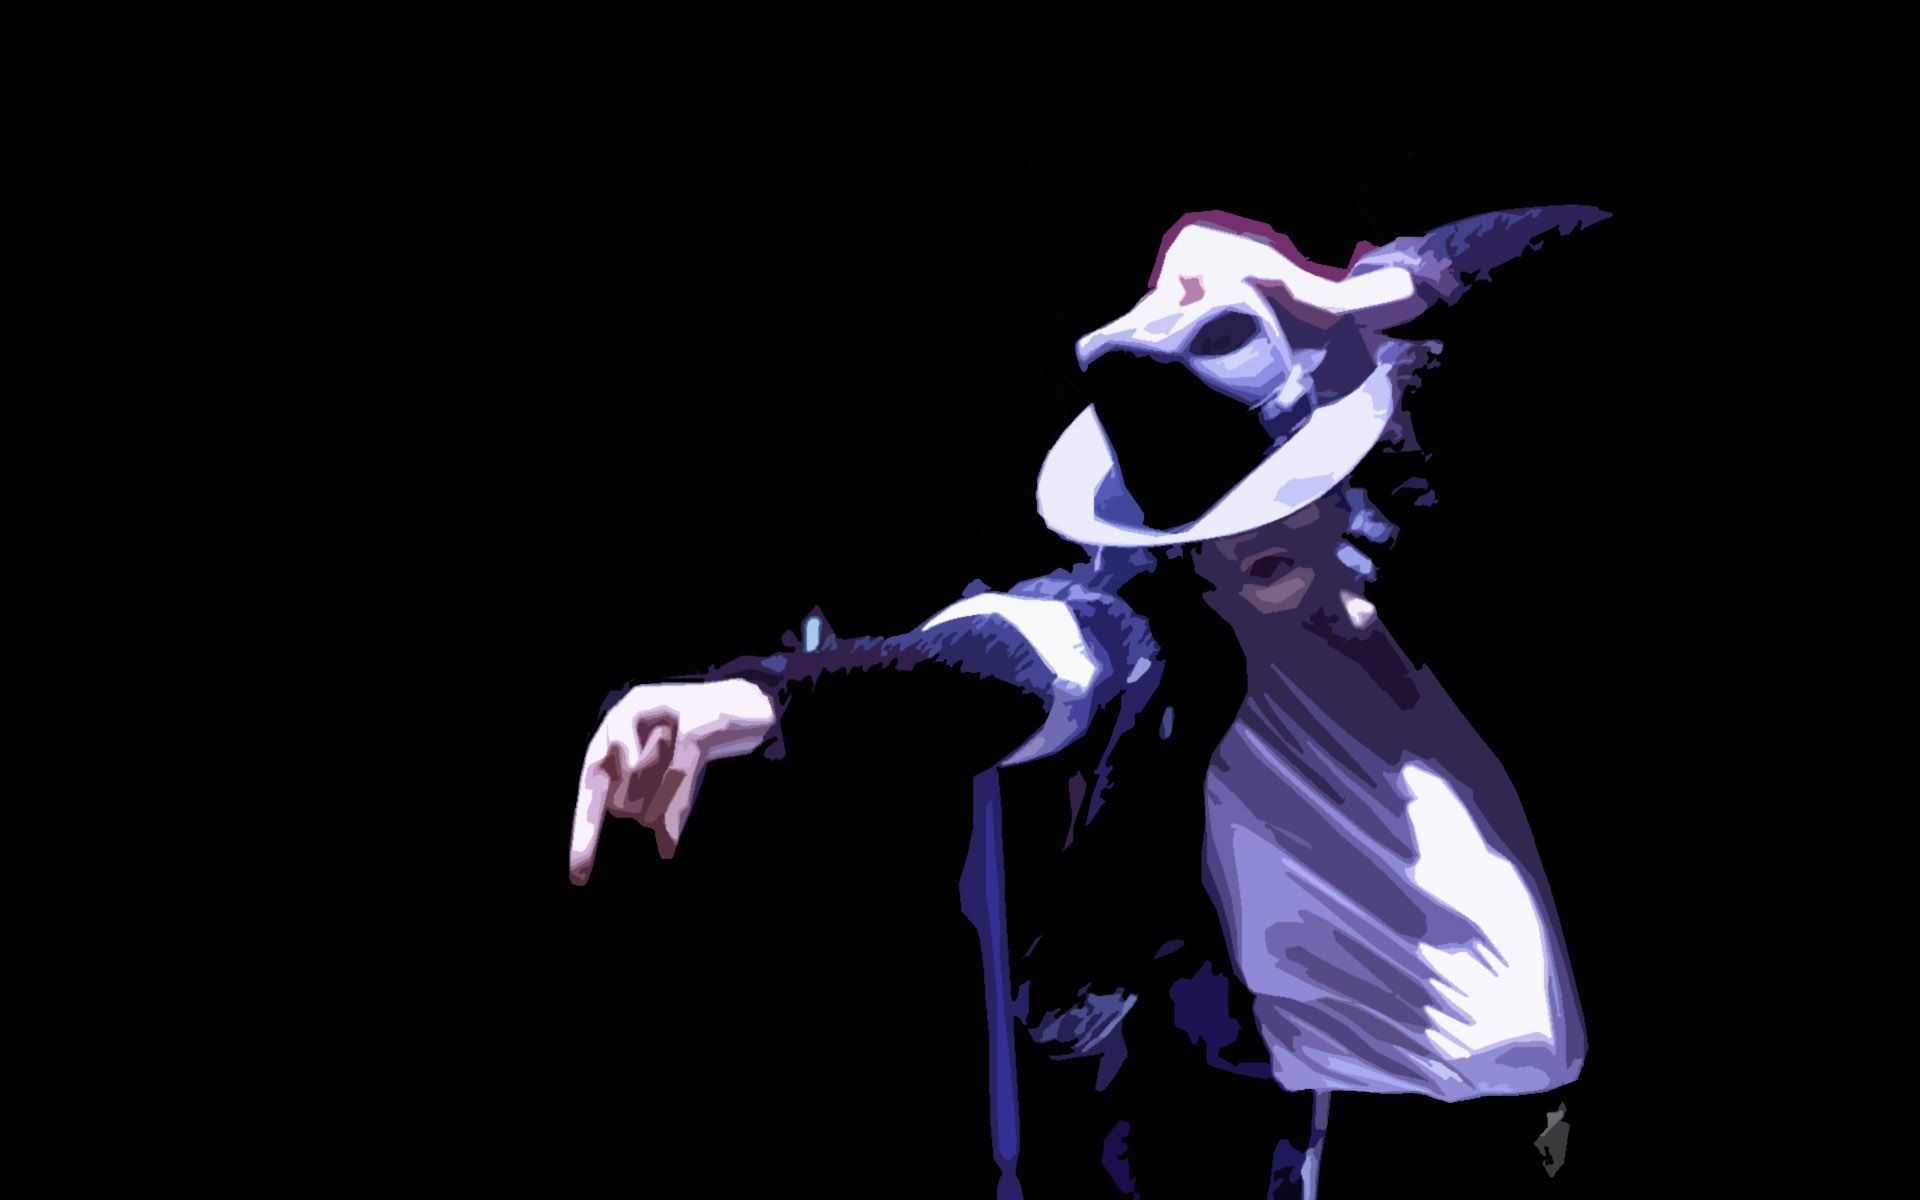 1920x1200 Michael Jackson HD Wallpapers - Wallpaper Cave